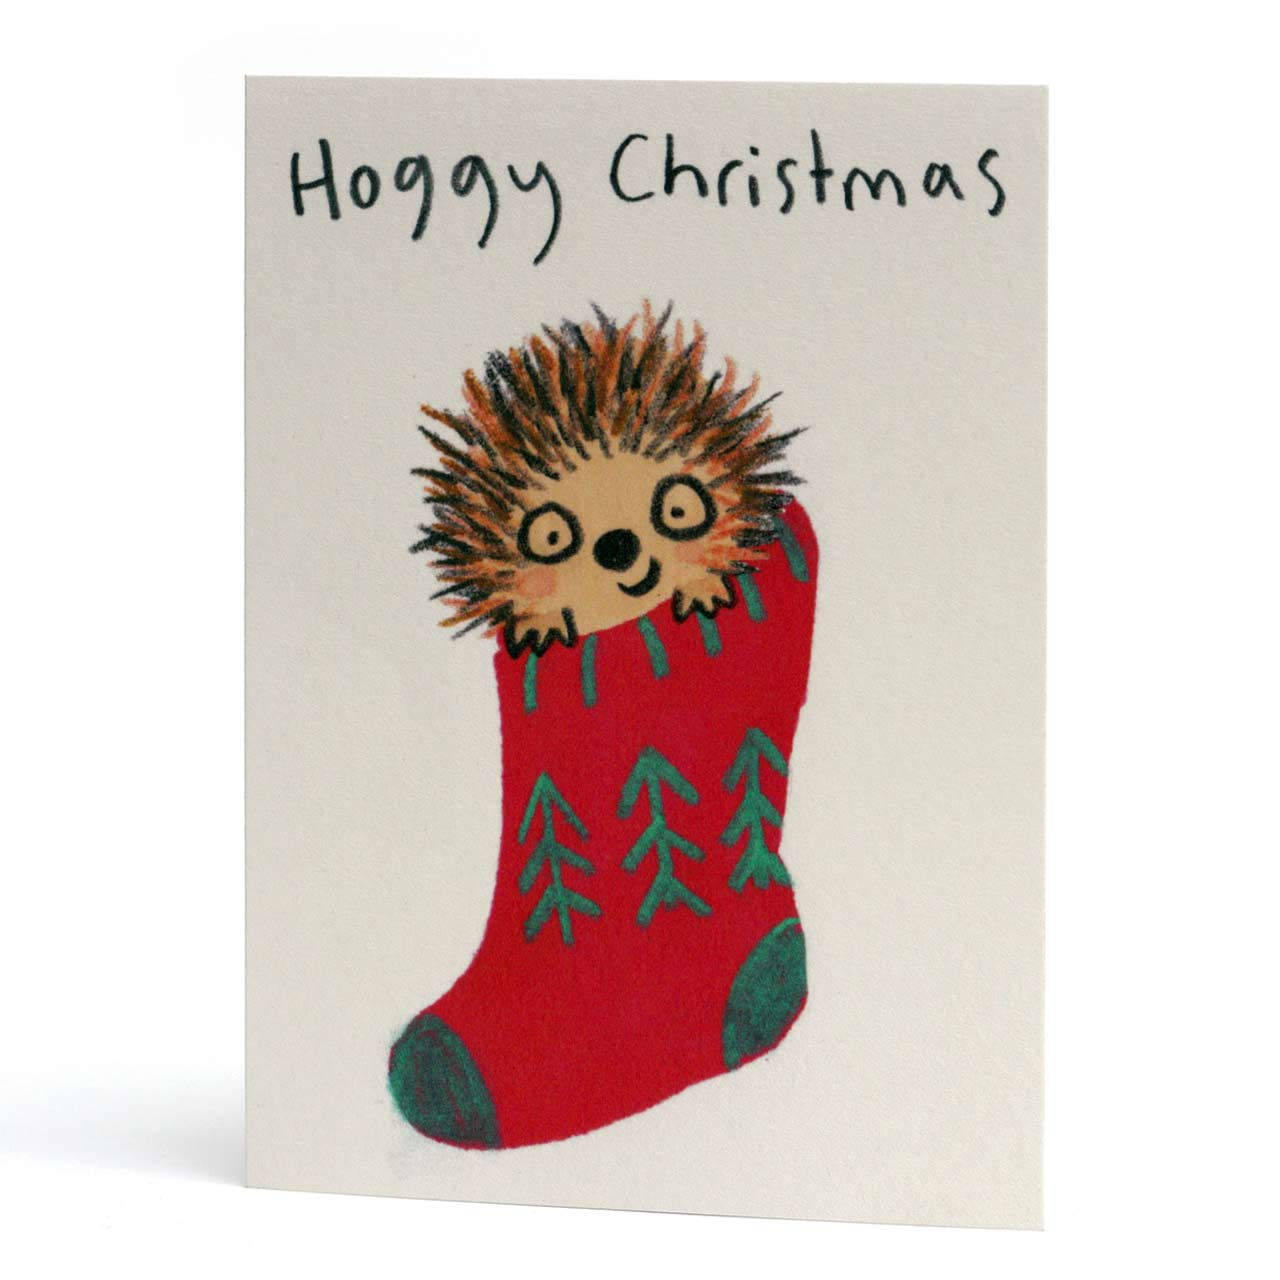 Hoggy Christmas Stocking Card